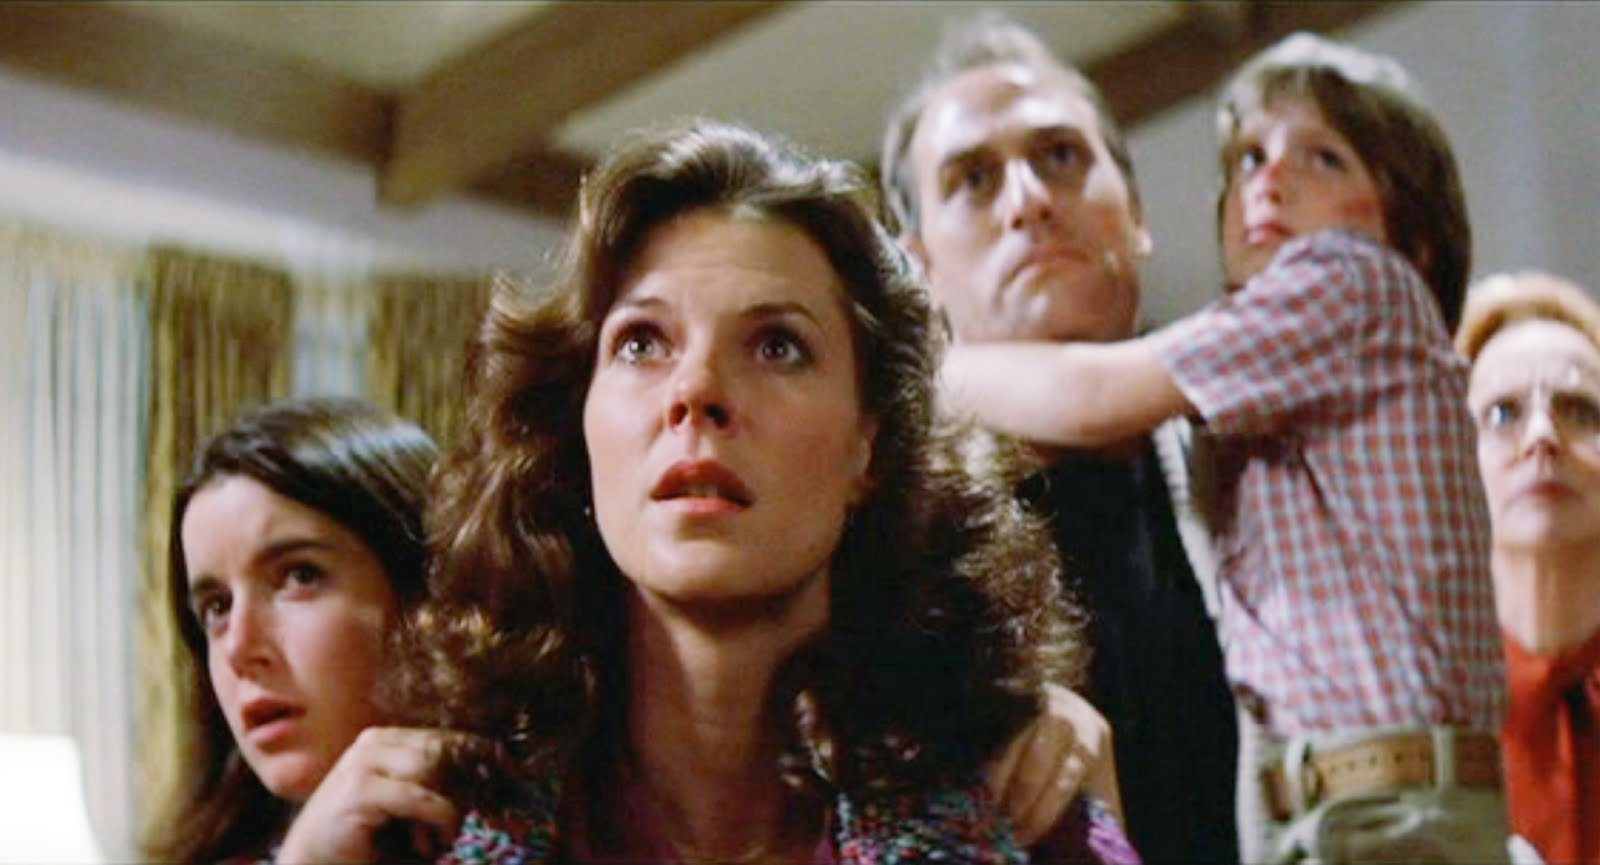 More Than a Freeling: JoBeth Williams as Cinema's Final Mom